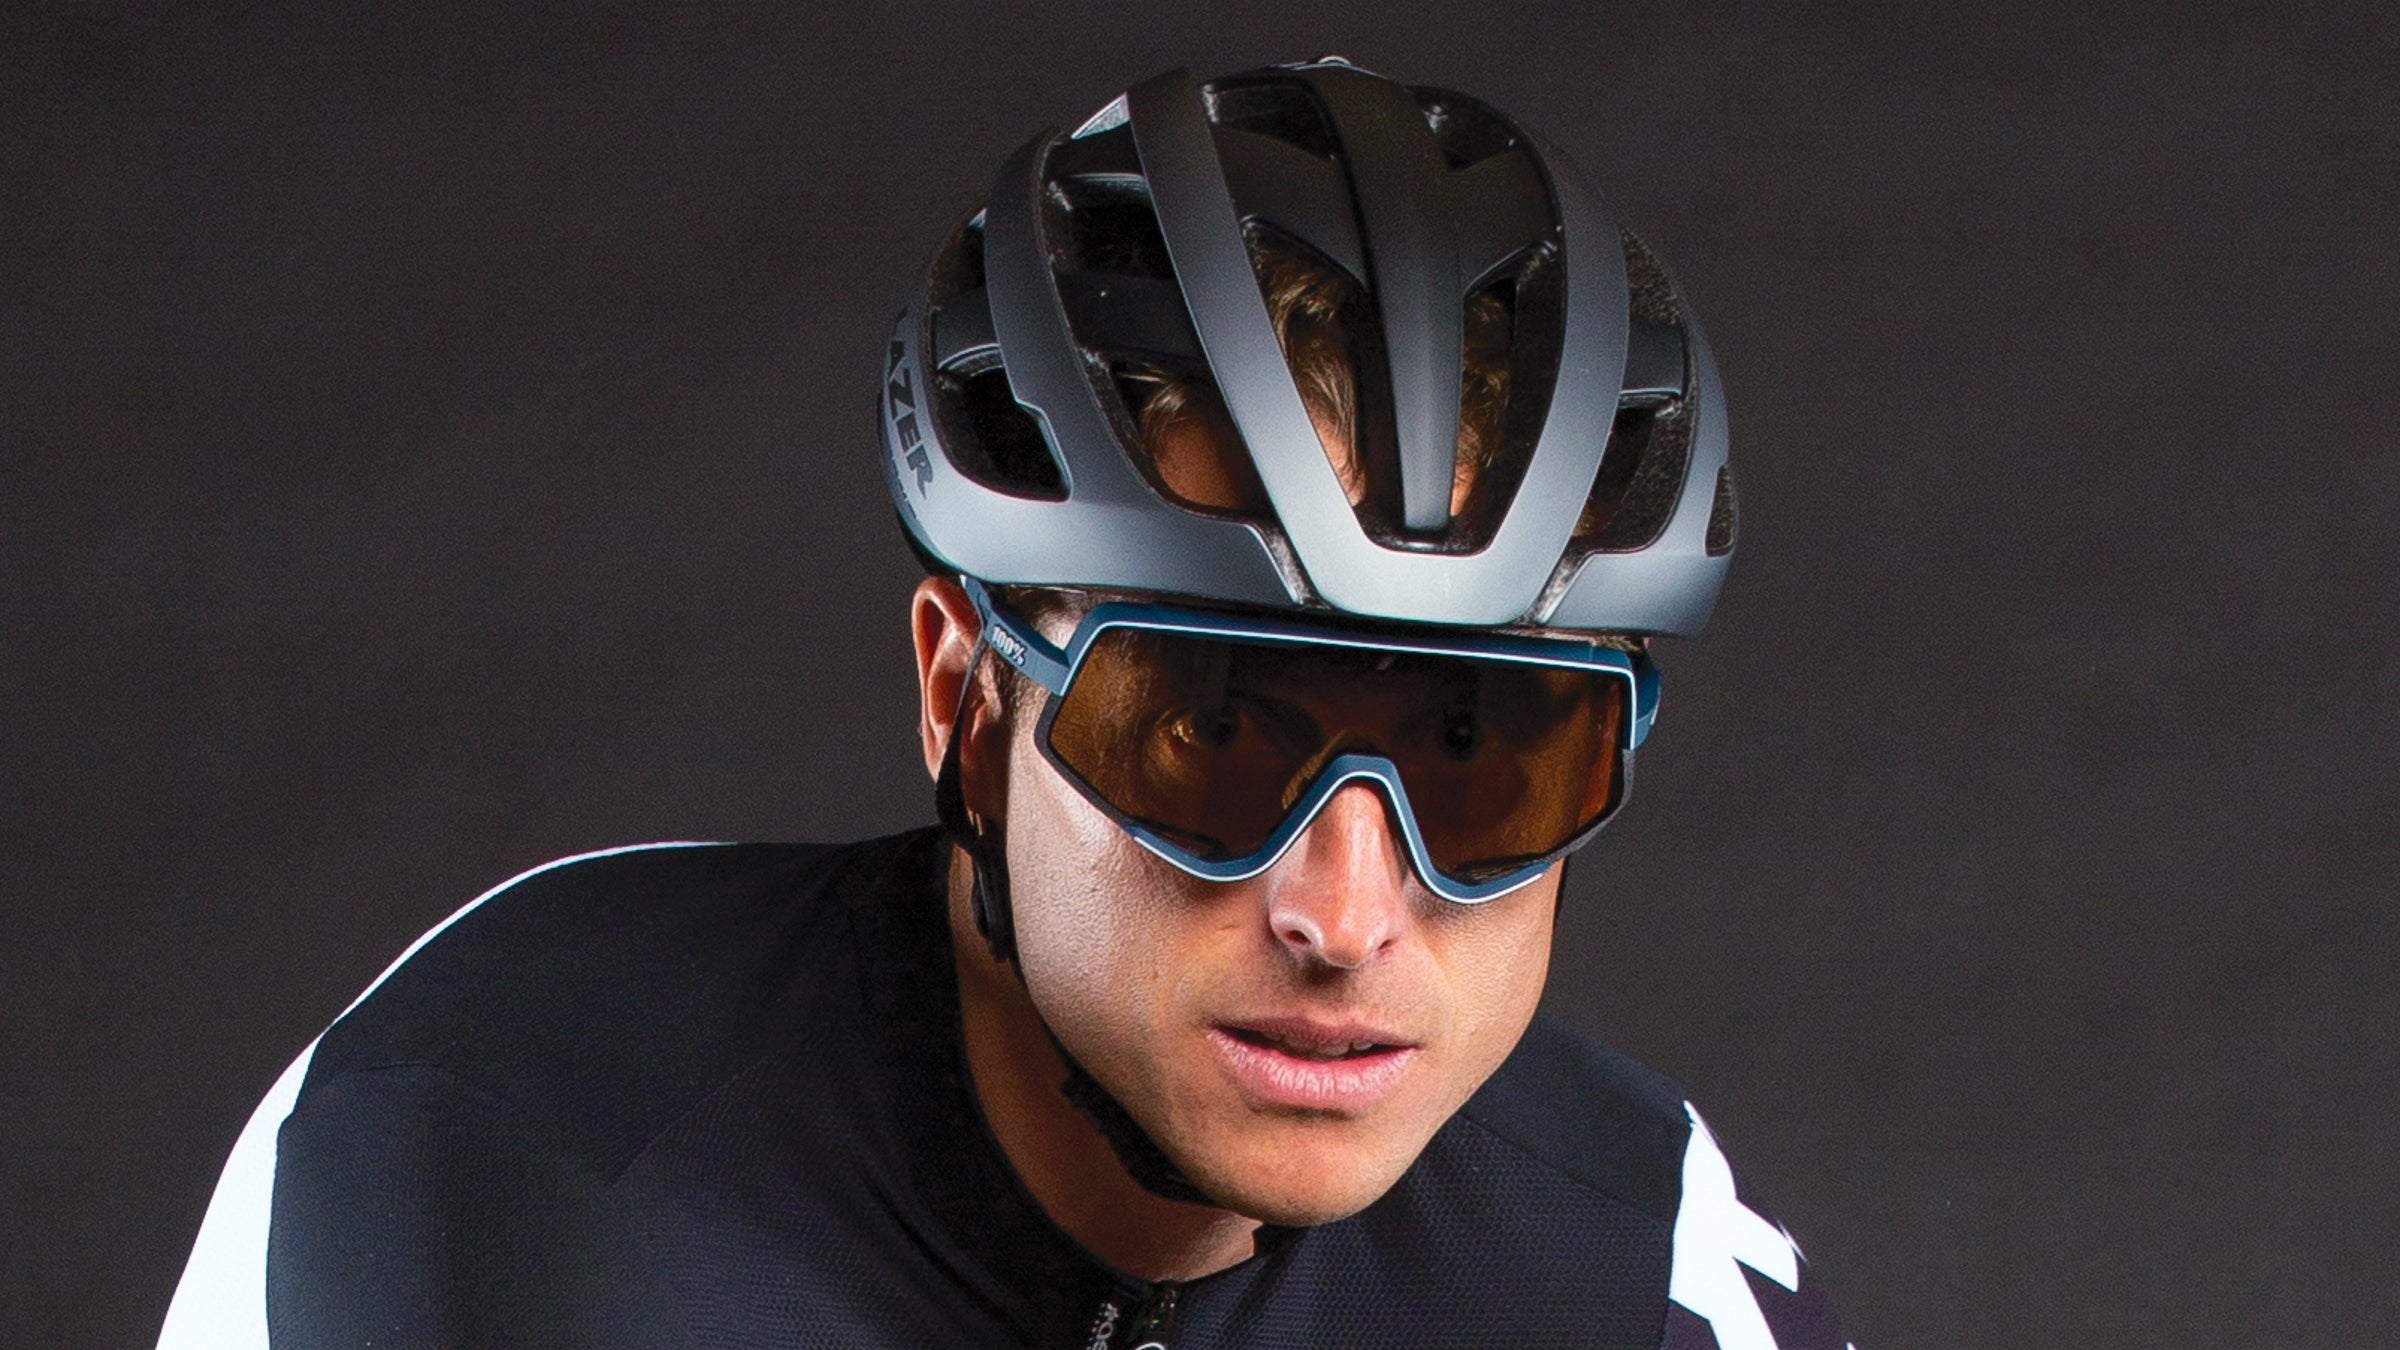 Close-up of man's face with bycicle helmet and glasses.